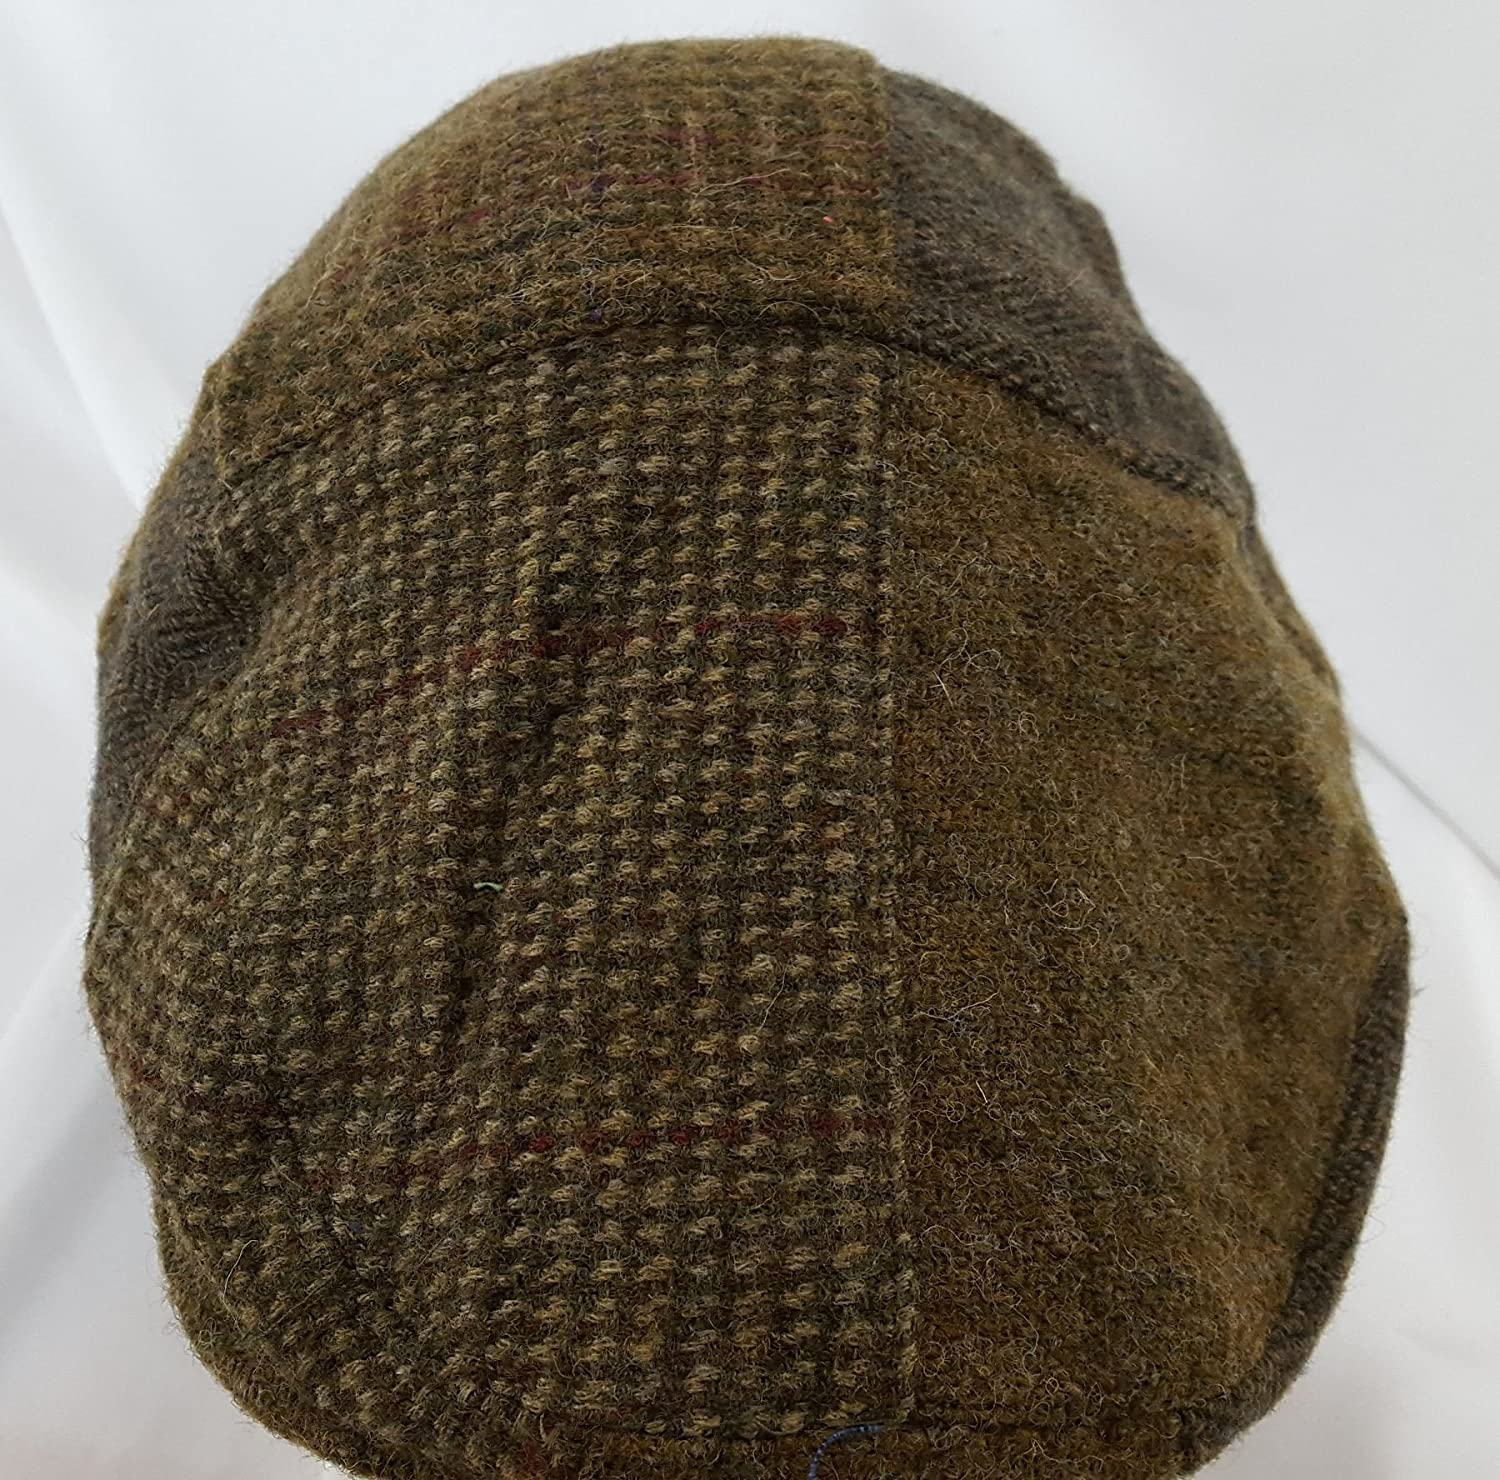 9aab65914 Ralph Lauren L XL Herringbone Check Tweed Mix Khaki Brown Flat Cap Polo  Leather Strap  Amazon.co.uk  Clothing